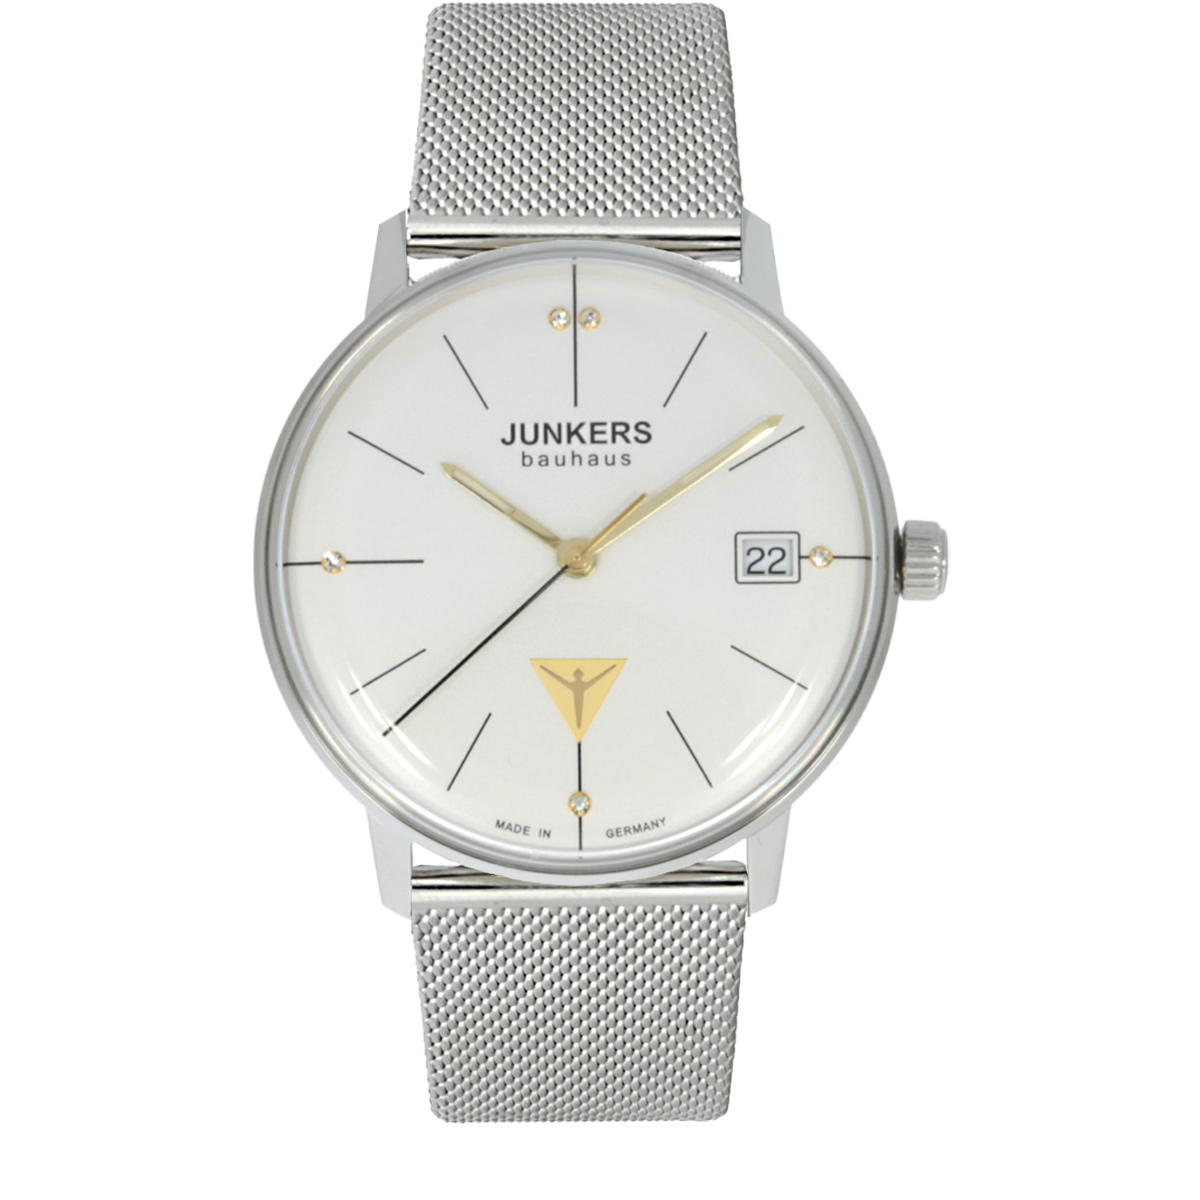 Junkers 6073M-1 Serie Bauhaus Lady